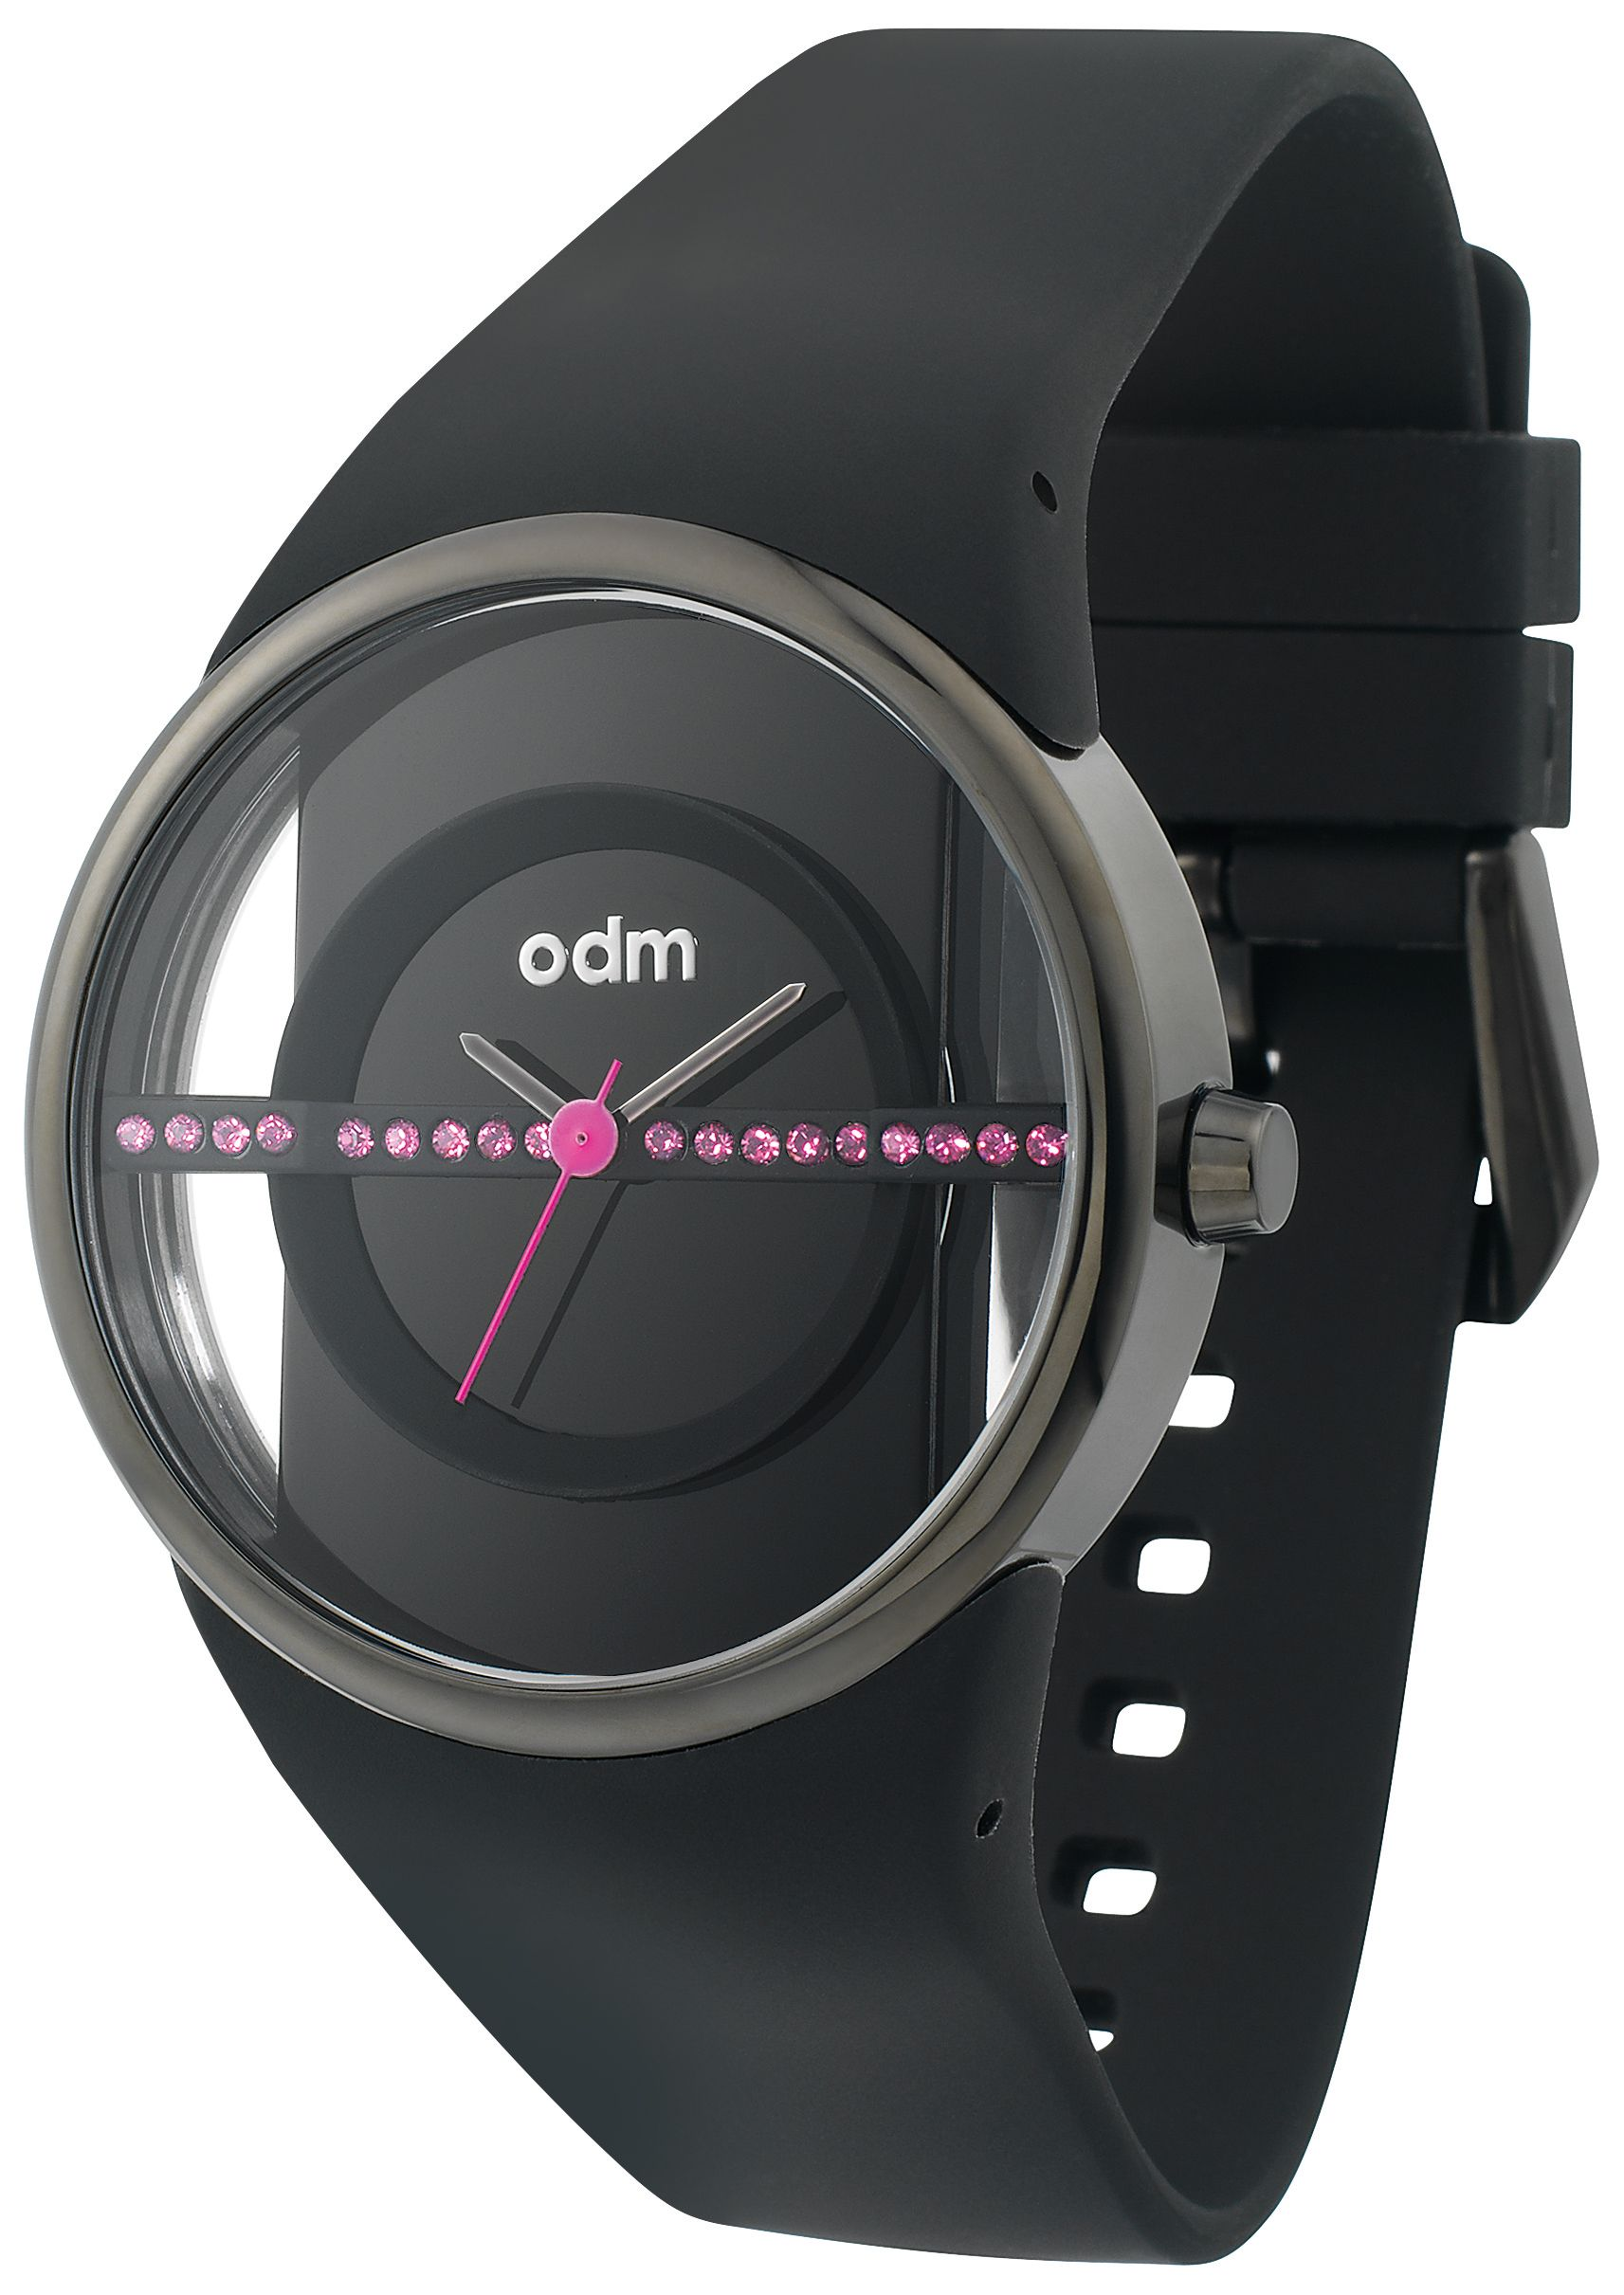 watches design walk odm com sky watch web talking pin